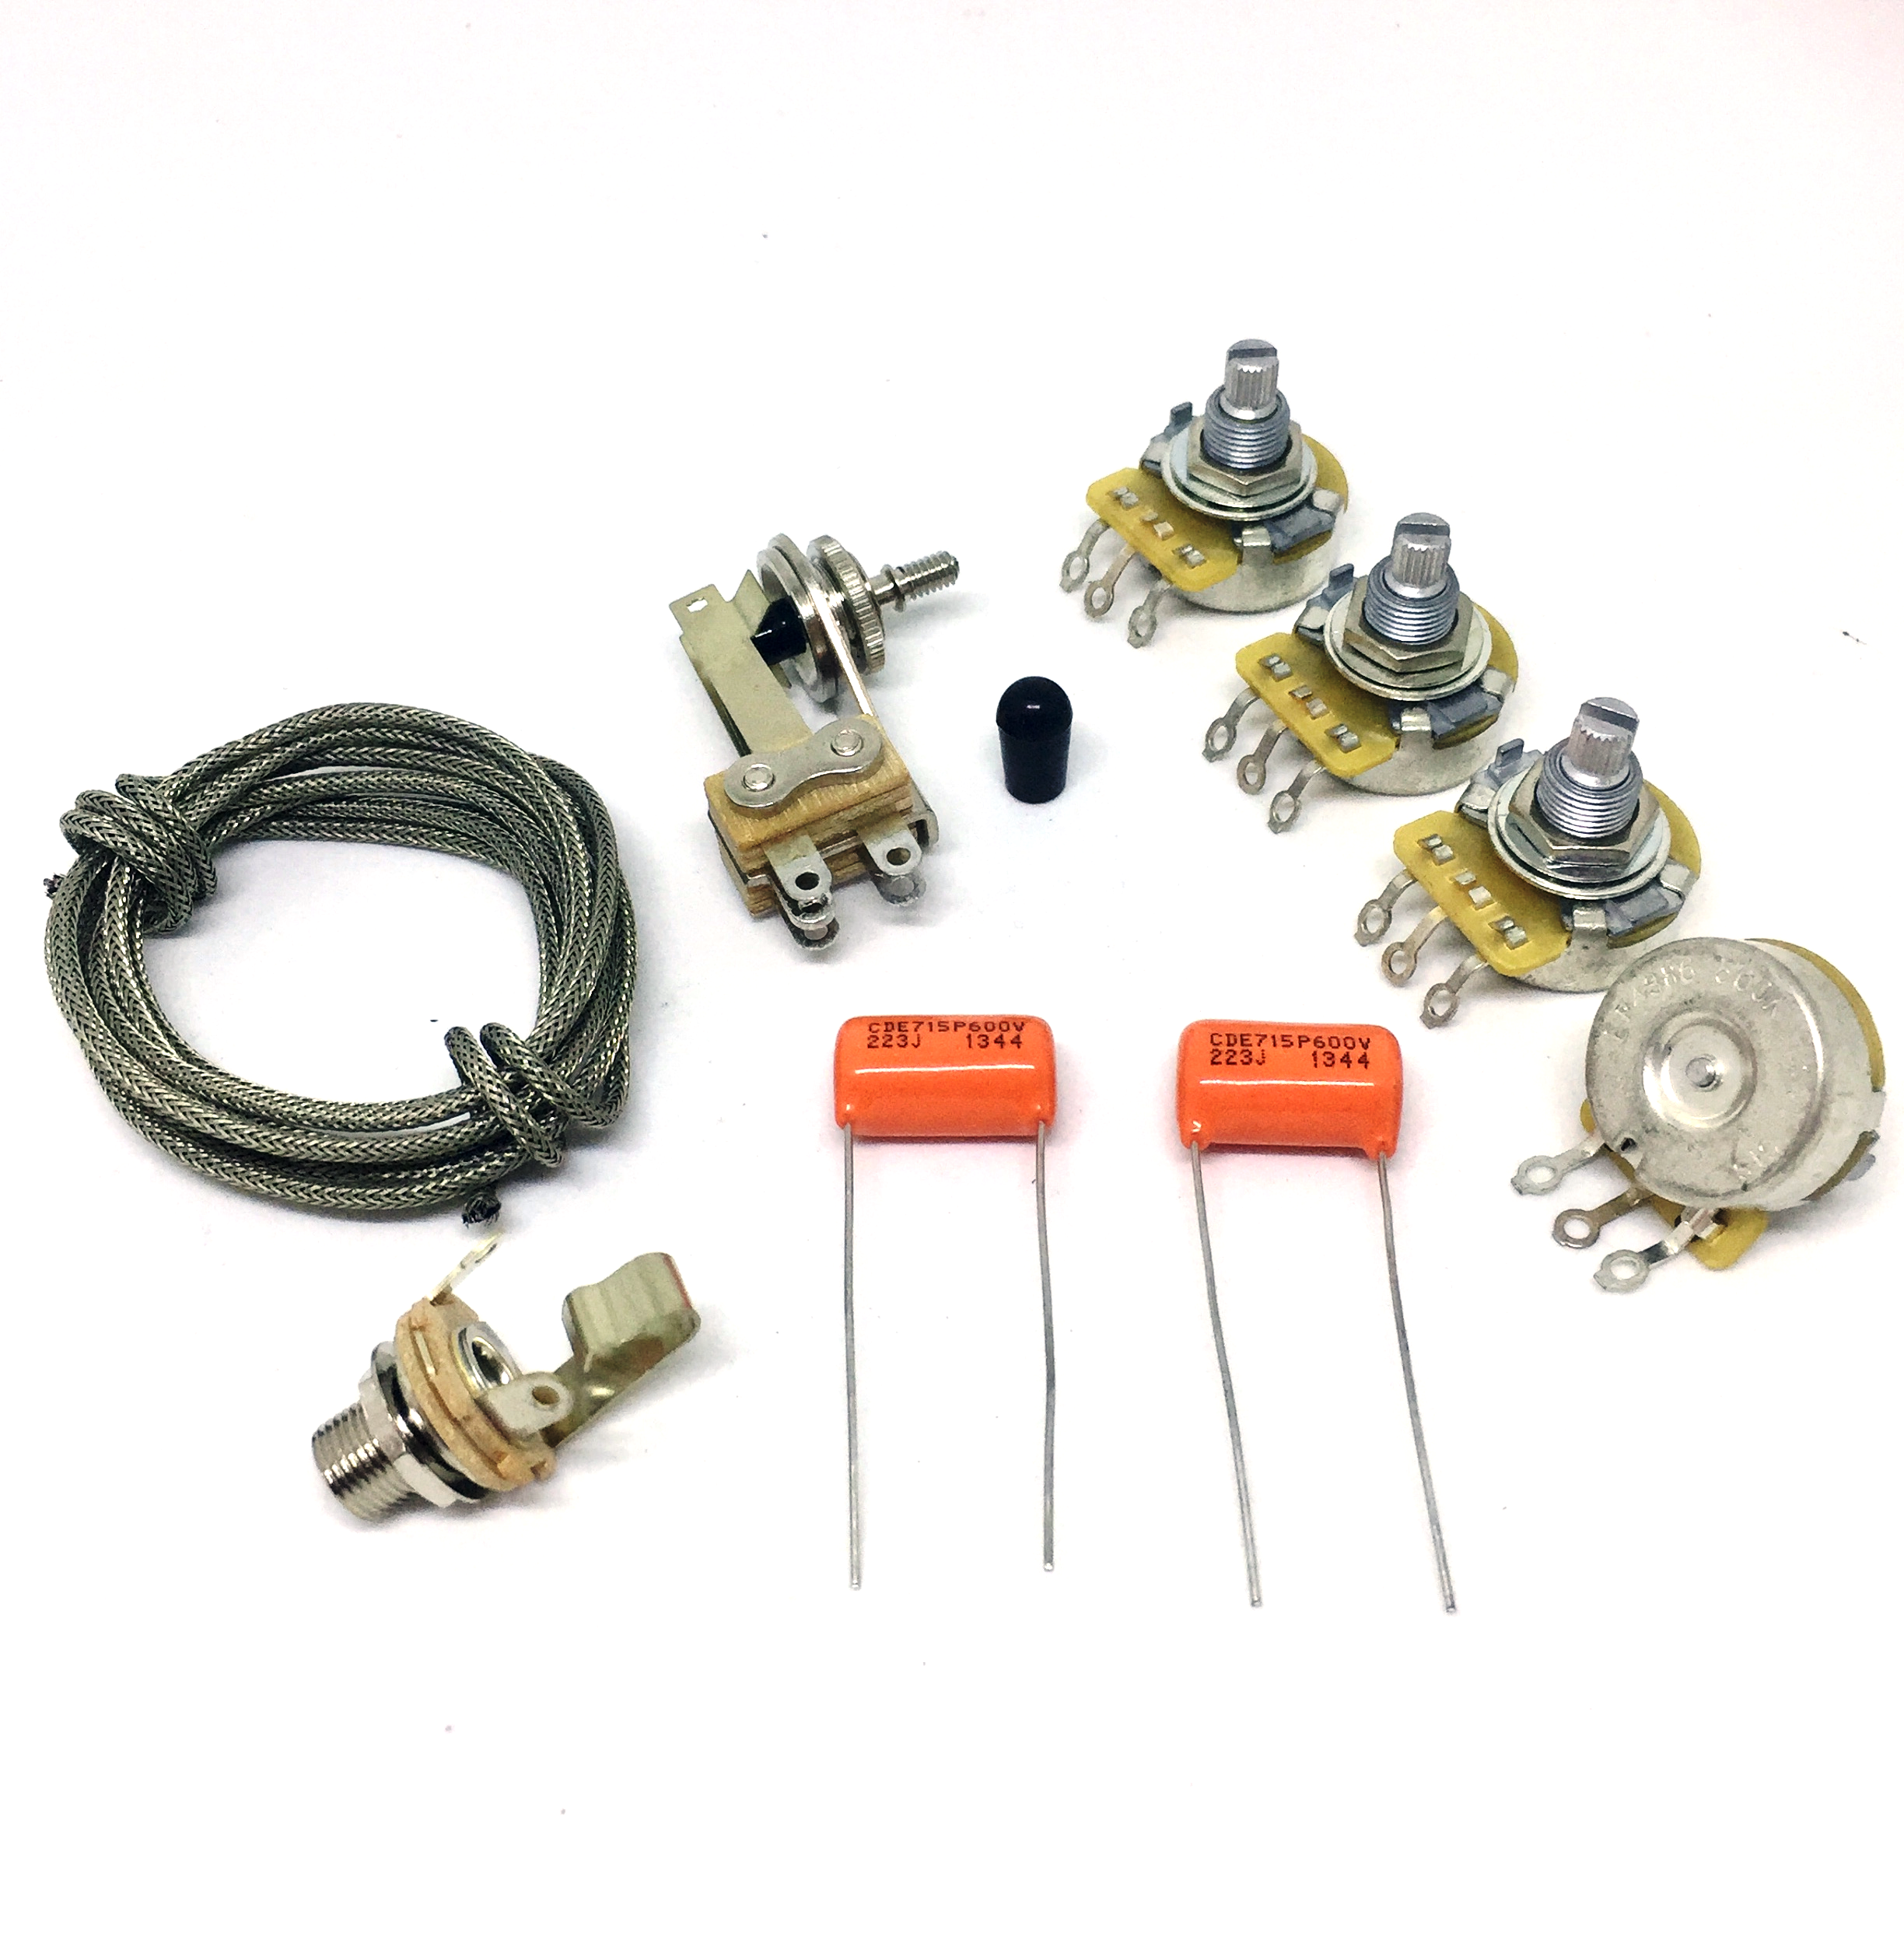 sg wiring kit cts 500k pots sprague  022mf capacitors switchcraft toggle  switch & input jack